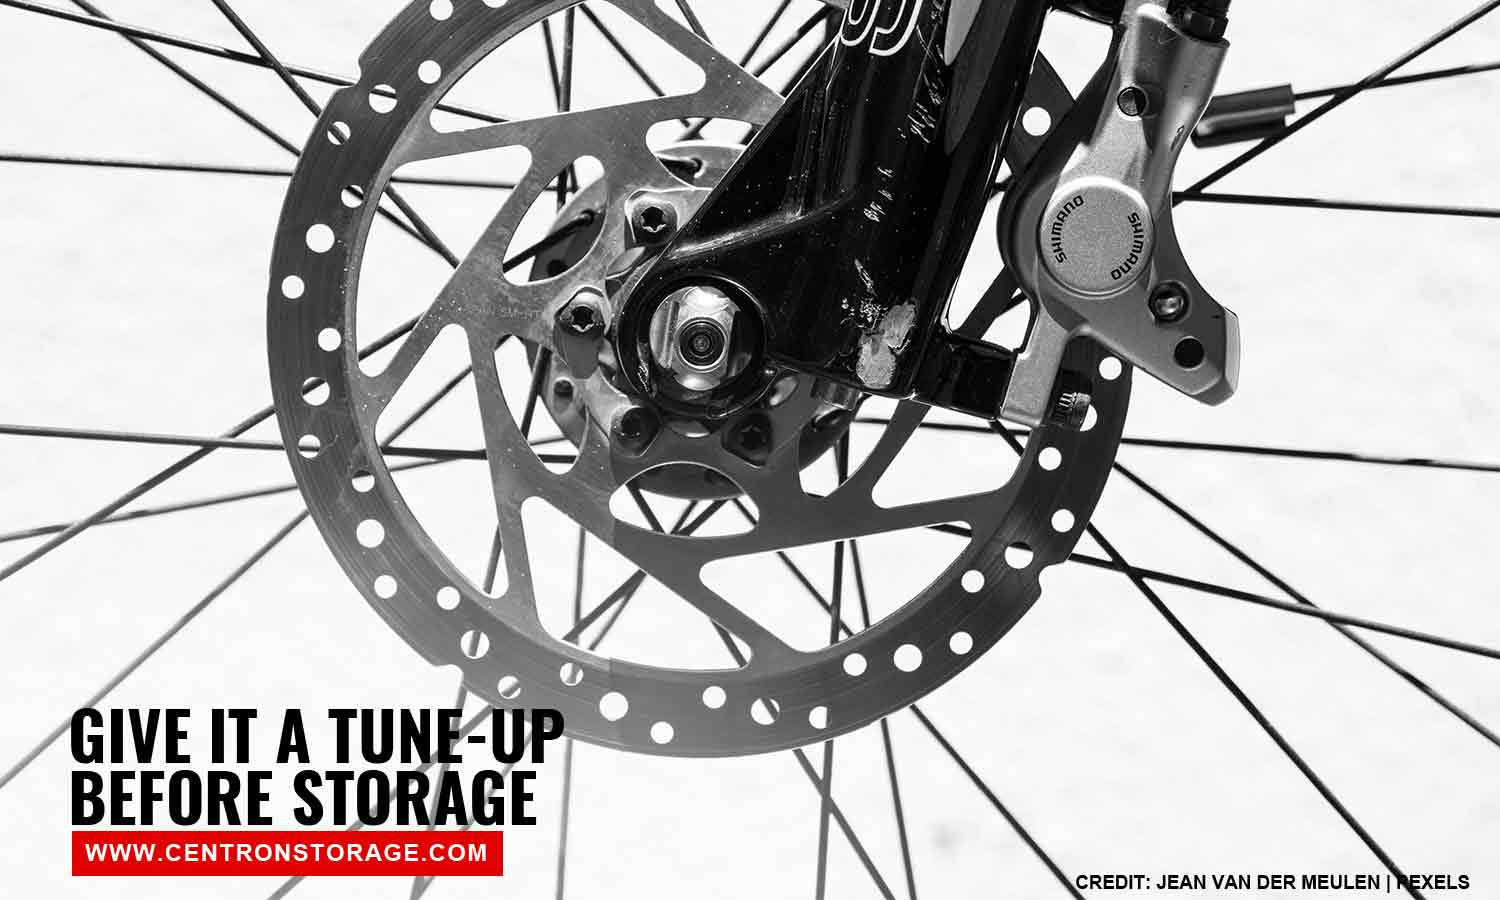 Give it a tune-up before storage